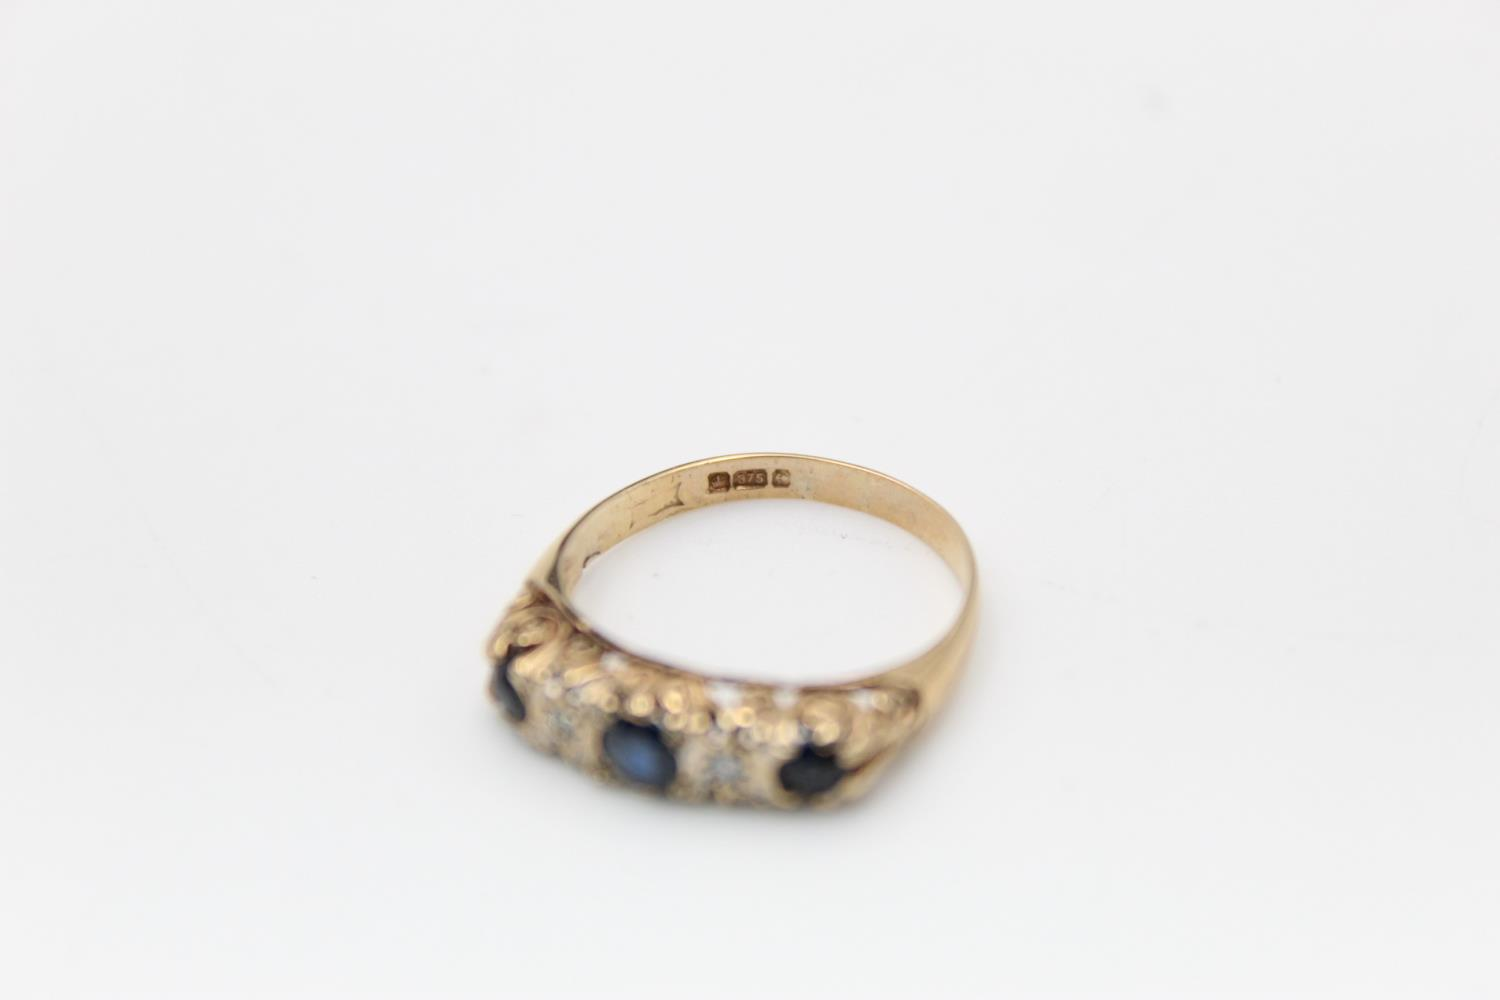 9ct Gold sapphire & diamond gypsy ring 1.8g Size M - Image 4 of 4